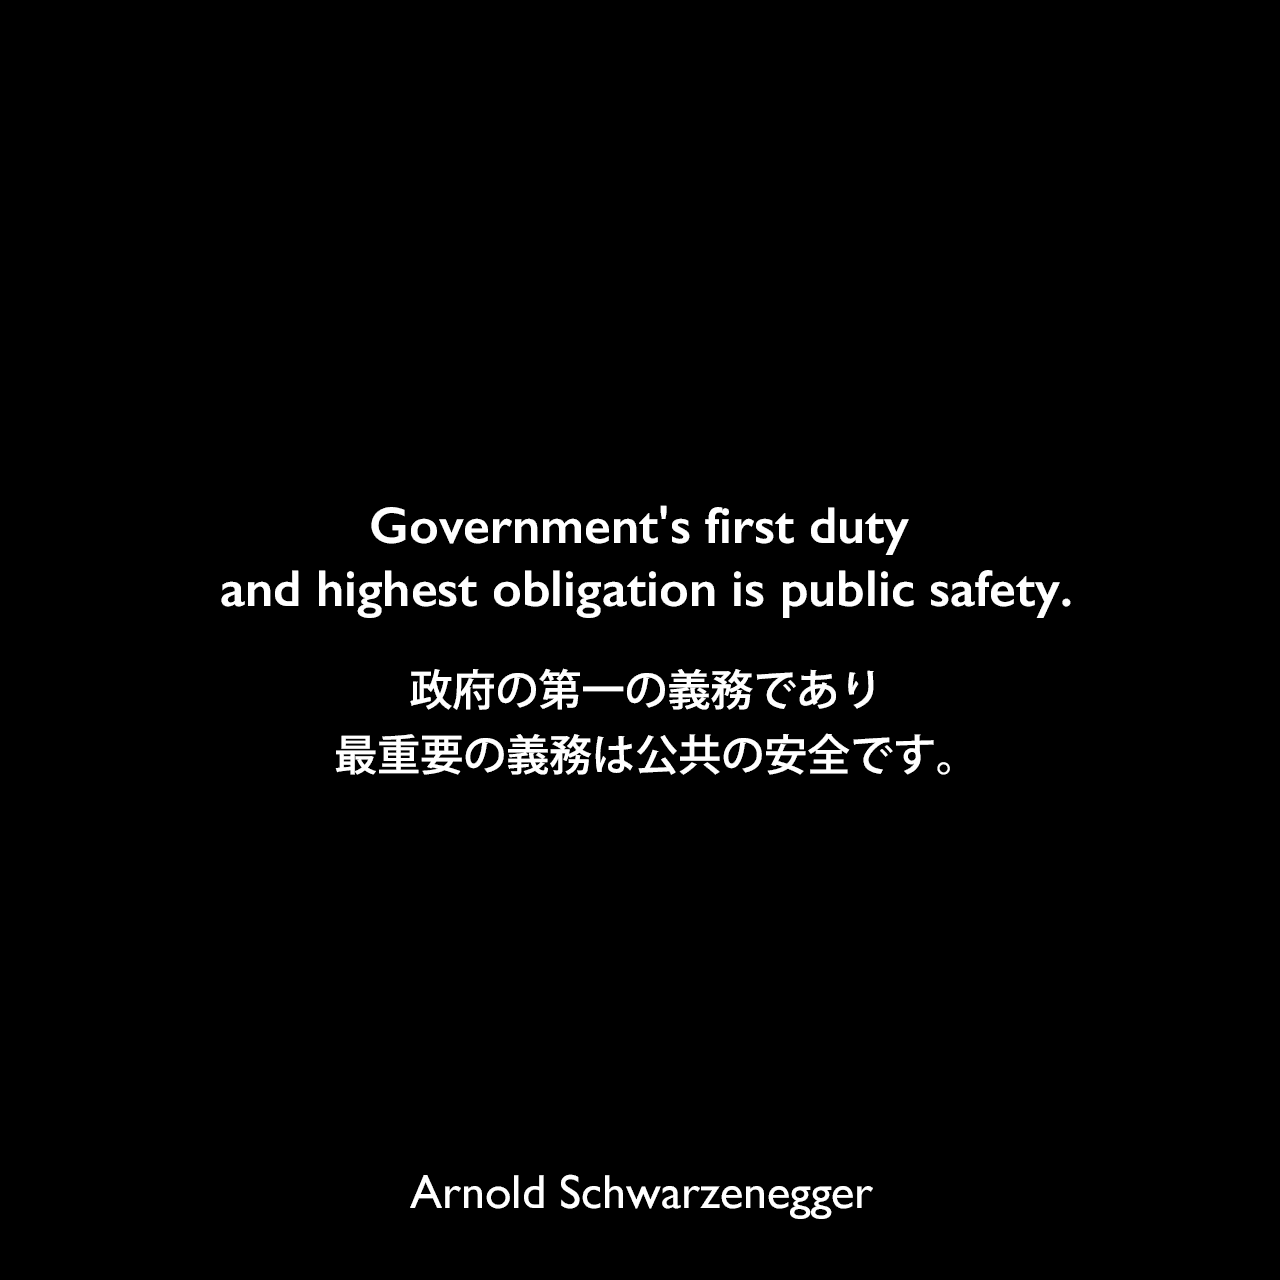 Government's first duty and highest obligation is public safety.政府の第一の義務であり最重要の義務は公共の安全です。Arnold Schwarzenegger